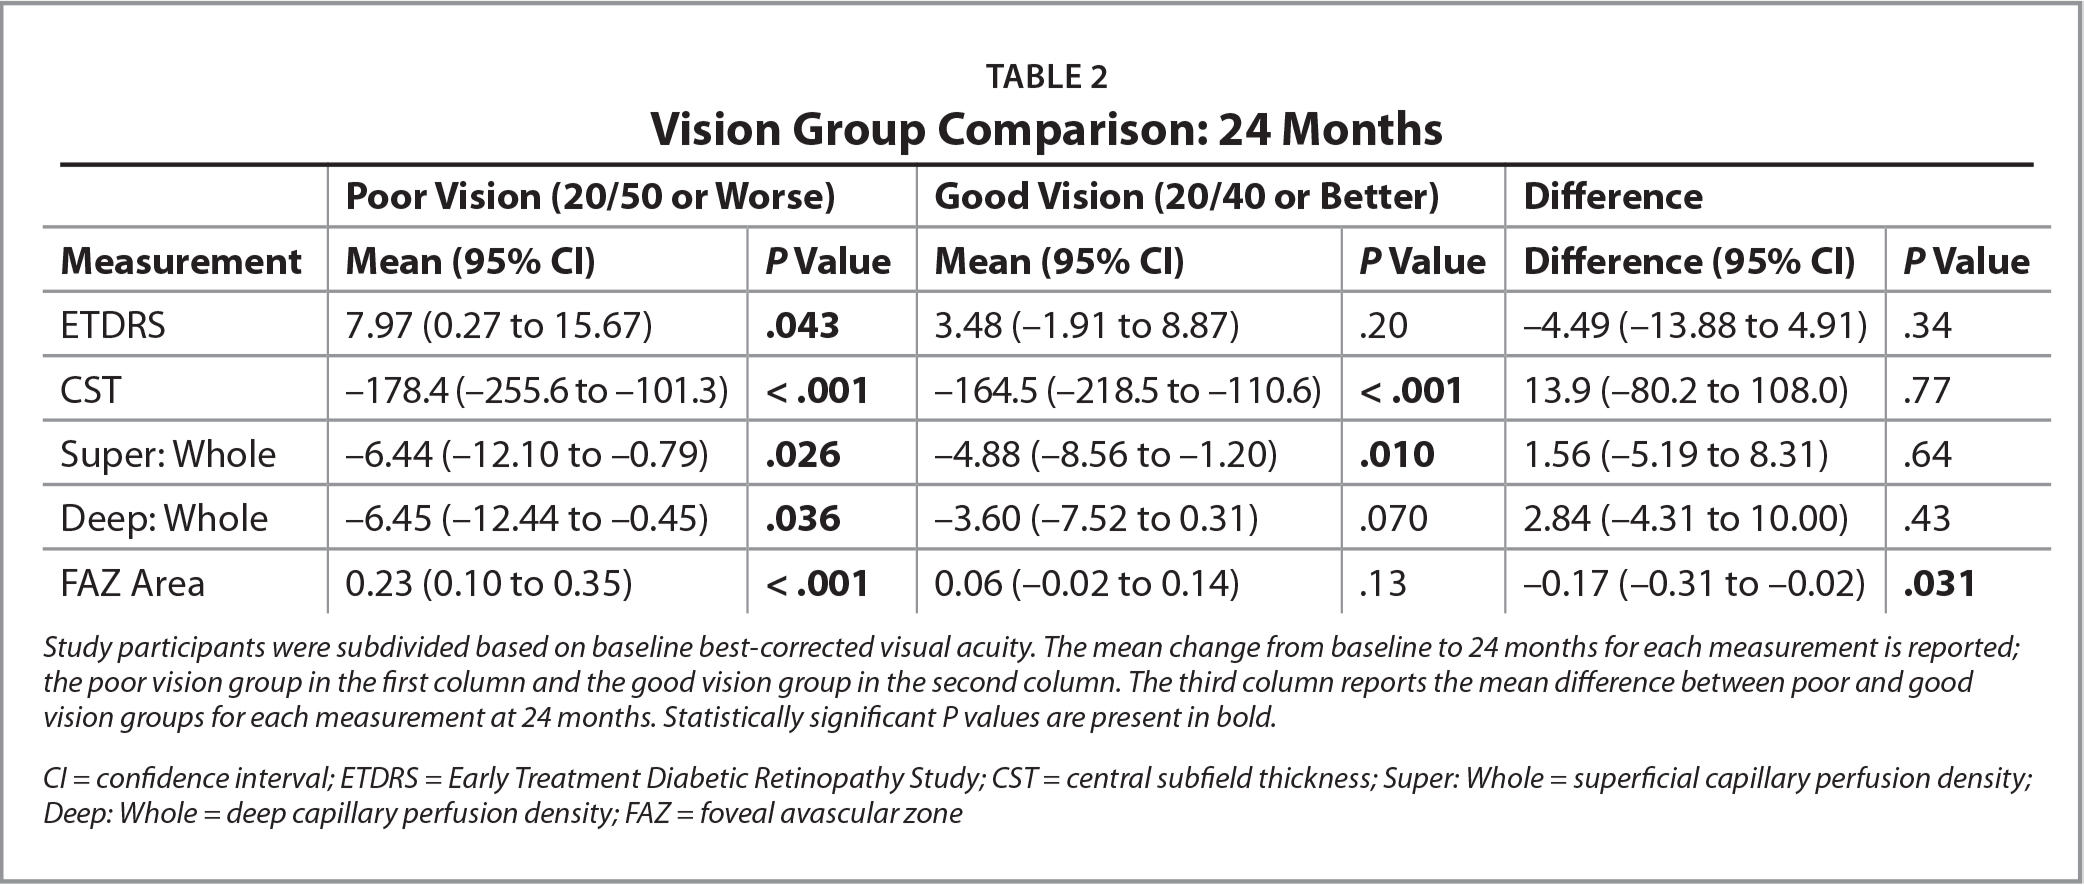 Vision Group Comparison: 24 Months